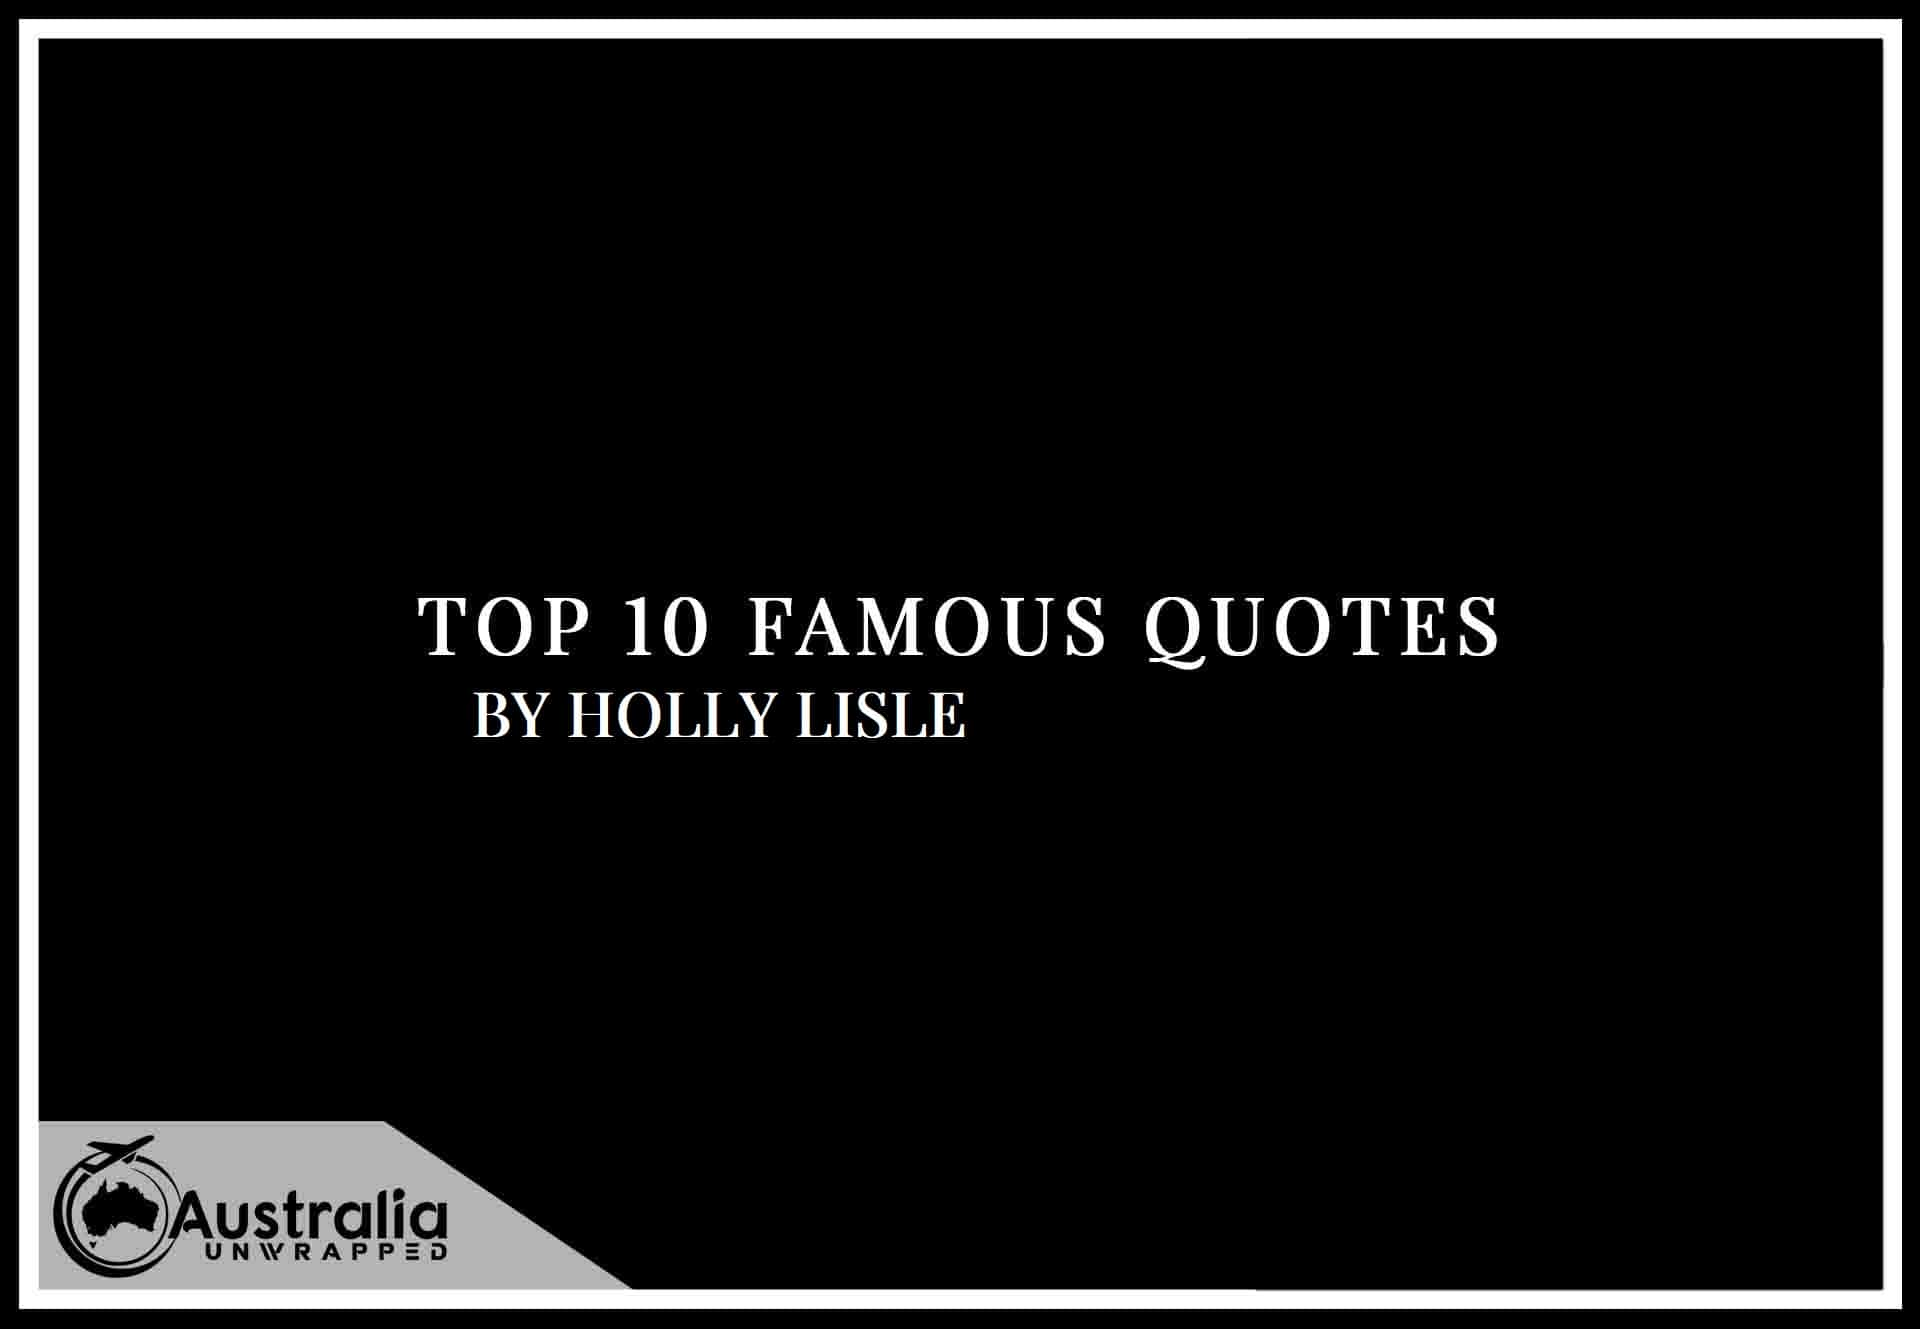 Top 10 Famous Quotes by Author Holly Lisle